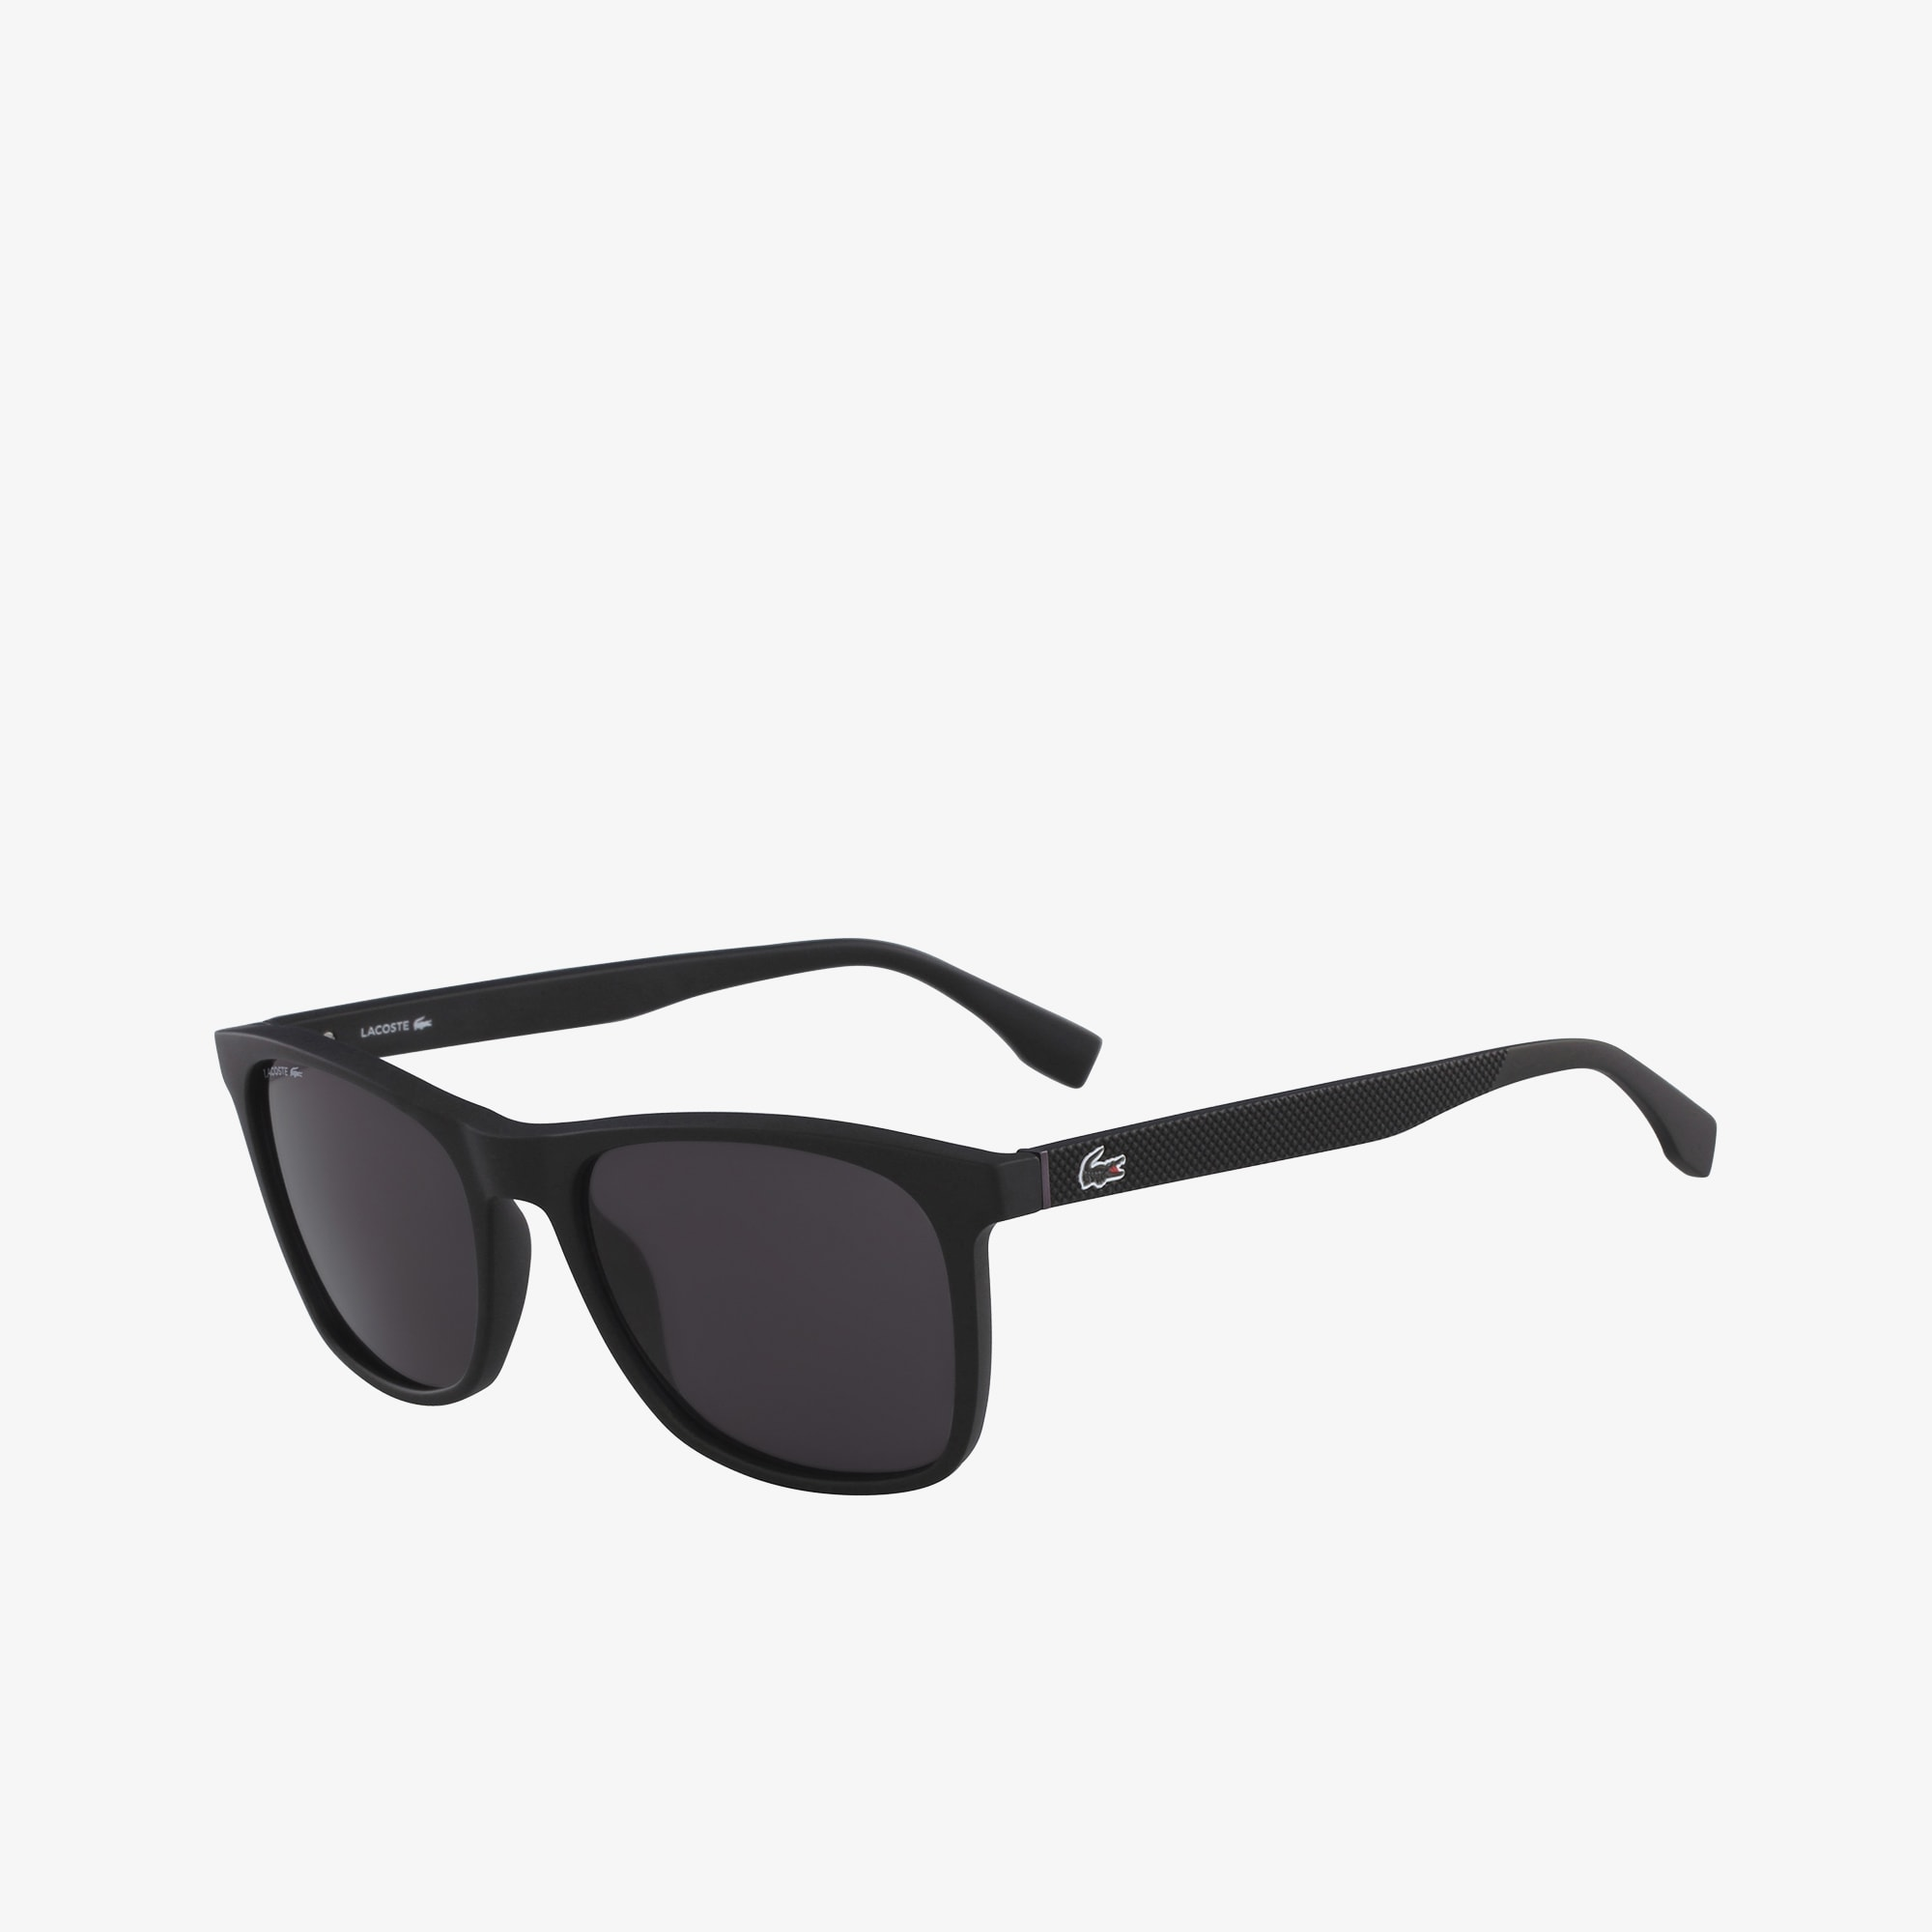 Rectangle Plastic L.12.12 Premium Sunglasses